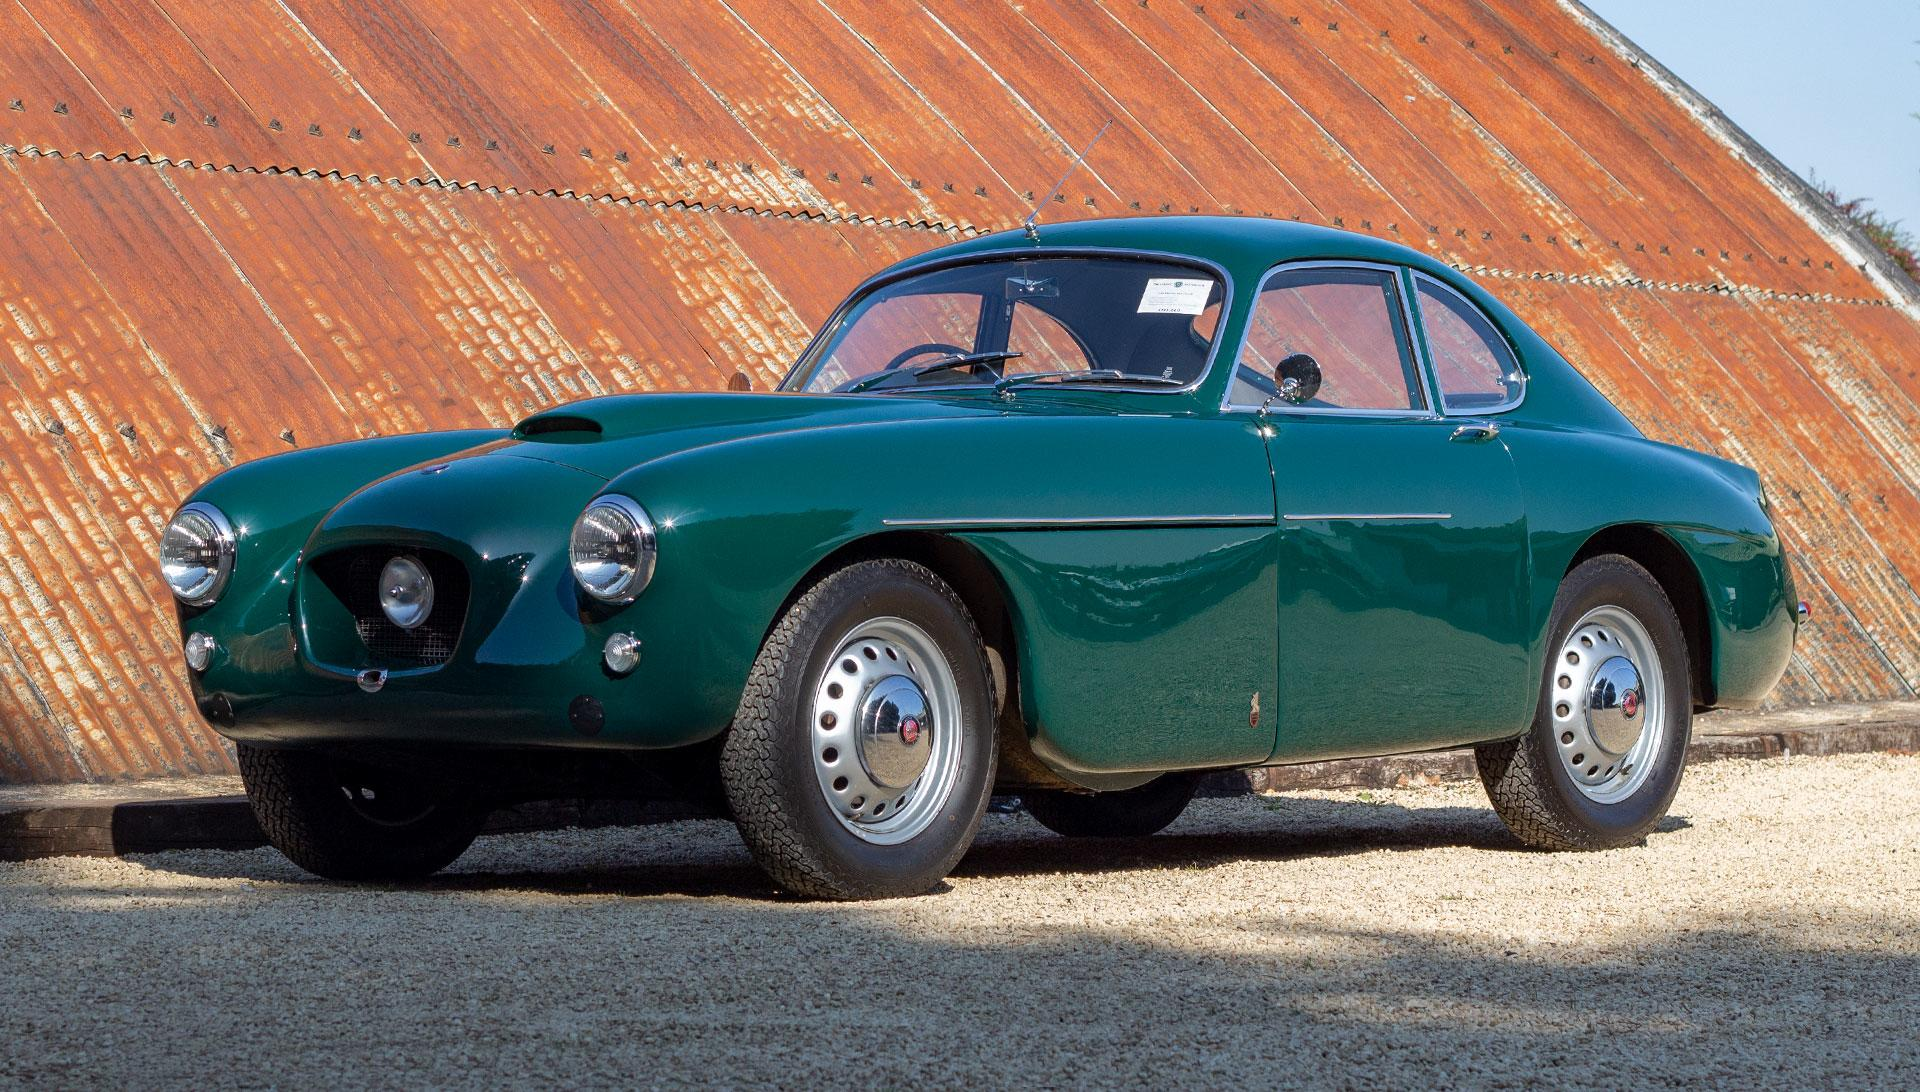 1955-bristol-404-coupe-for-sale-1.jpg